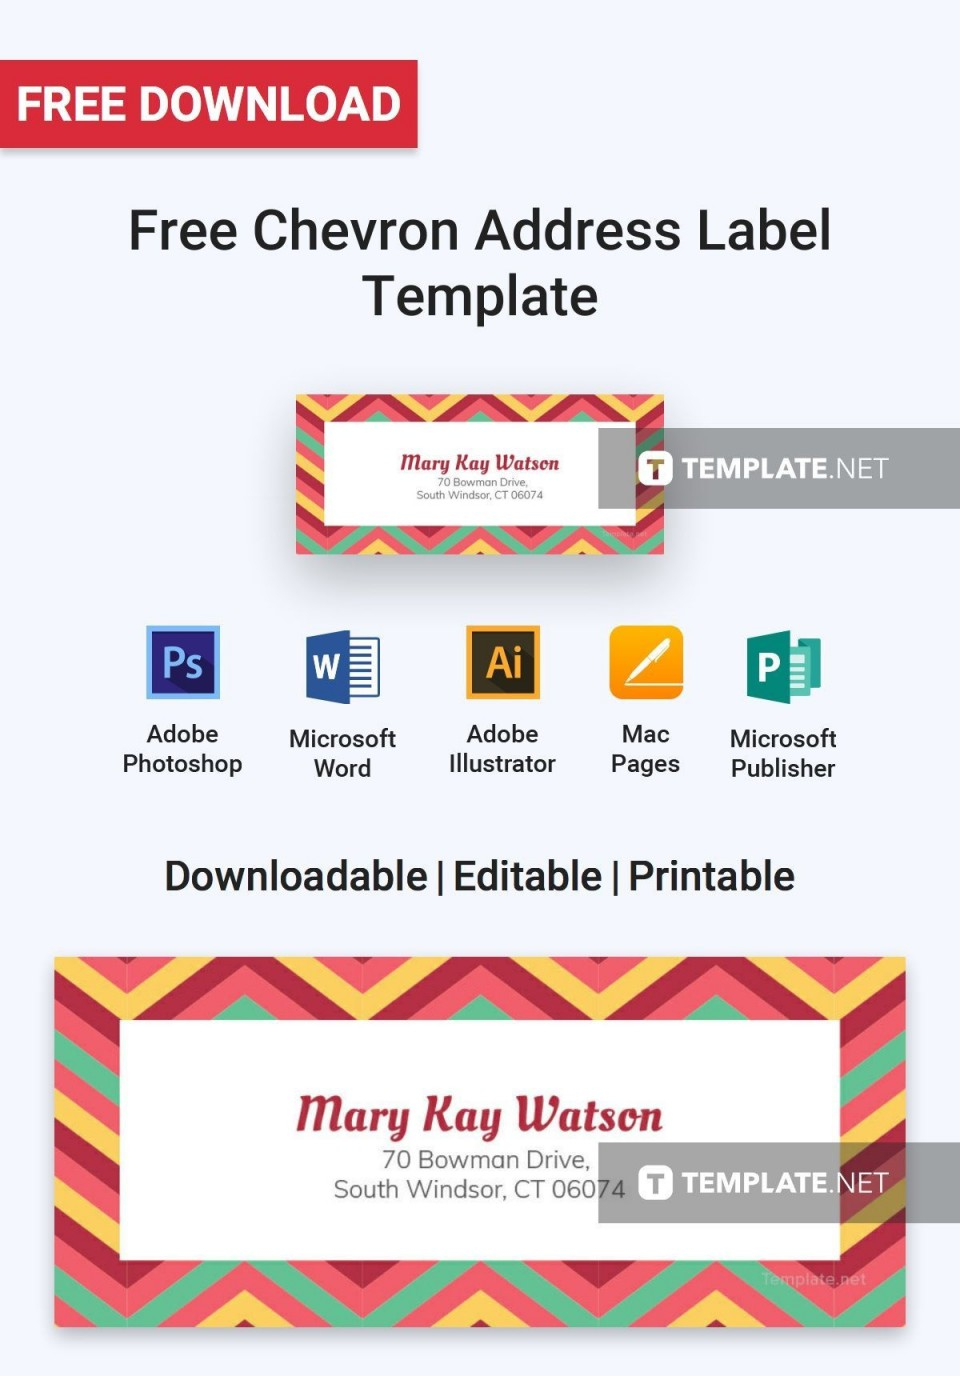 005 Breathtaking Addres Label Template For Mac Page Sample  Return Avery 5160960